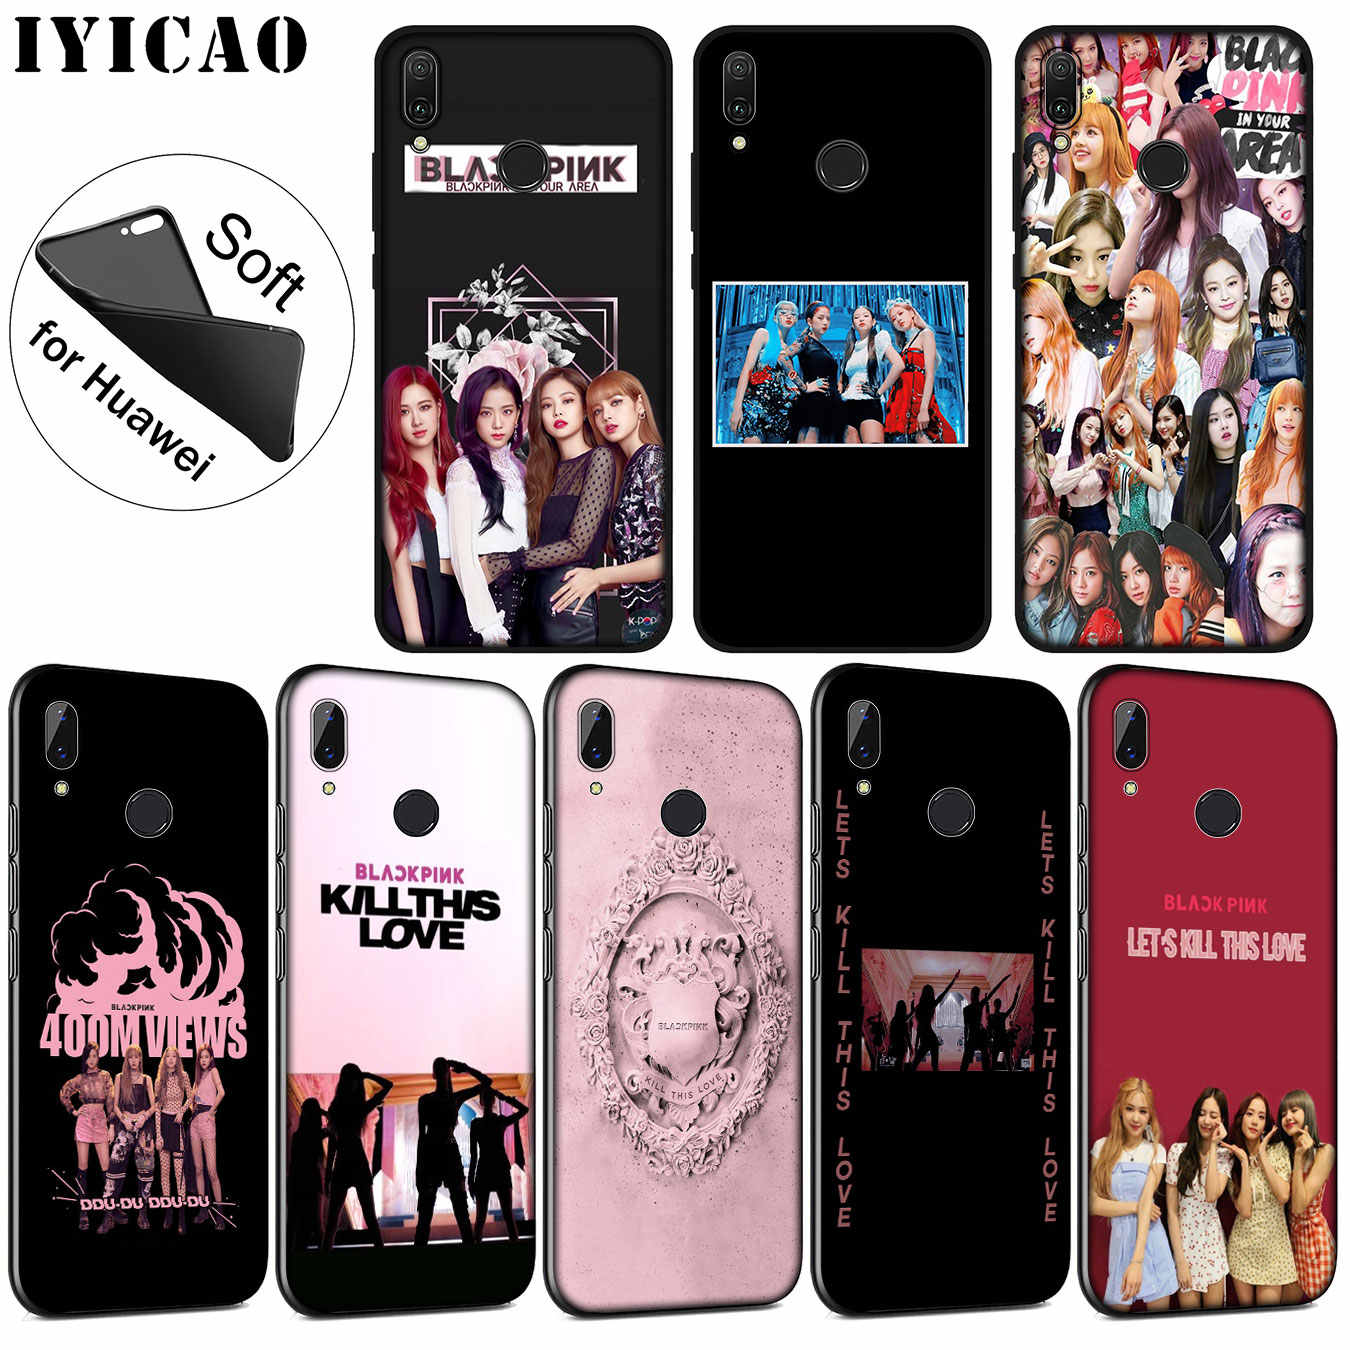 IYICAO blackpink kill this love Soft Silicone Case for Huawei P30 P20 Pro P10 P9 P8 Lite Mini 2017 2016 P smart Z 2019 Cover